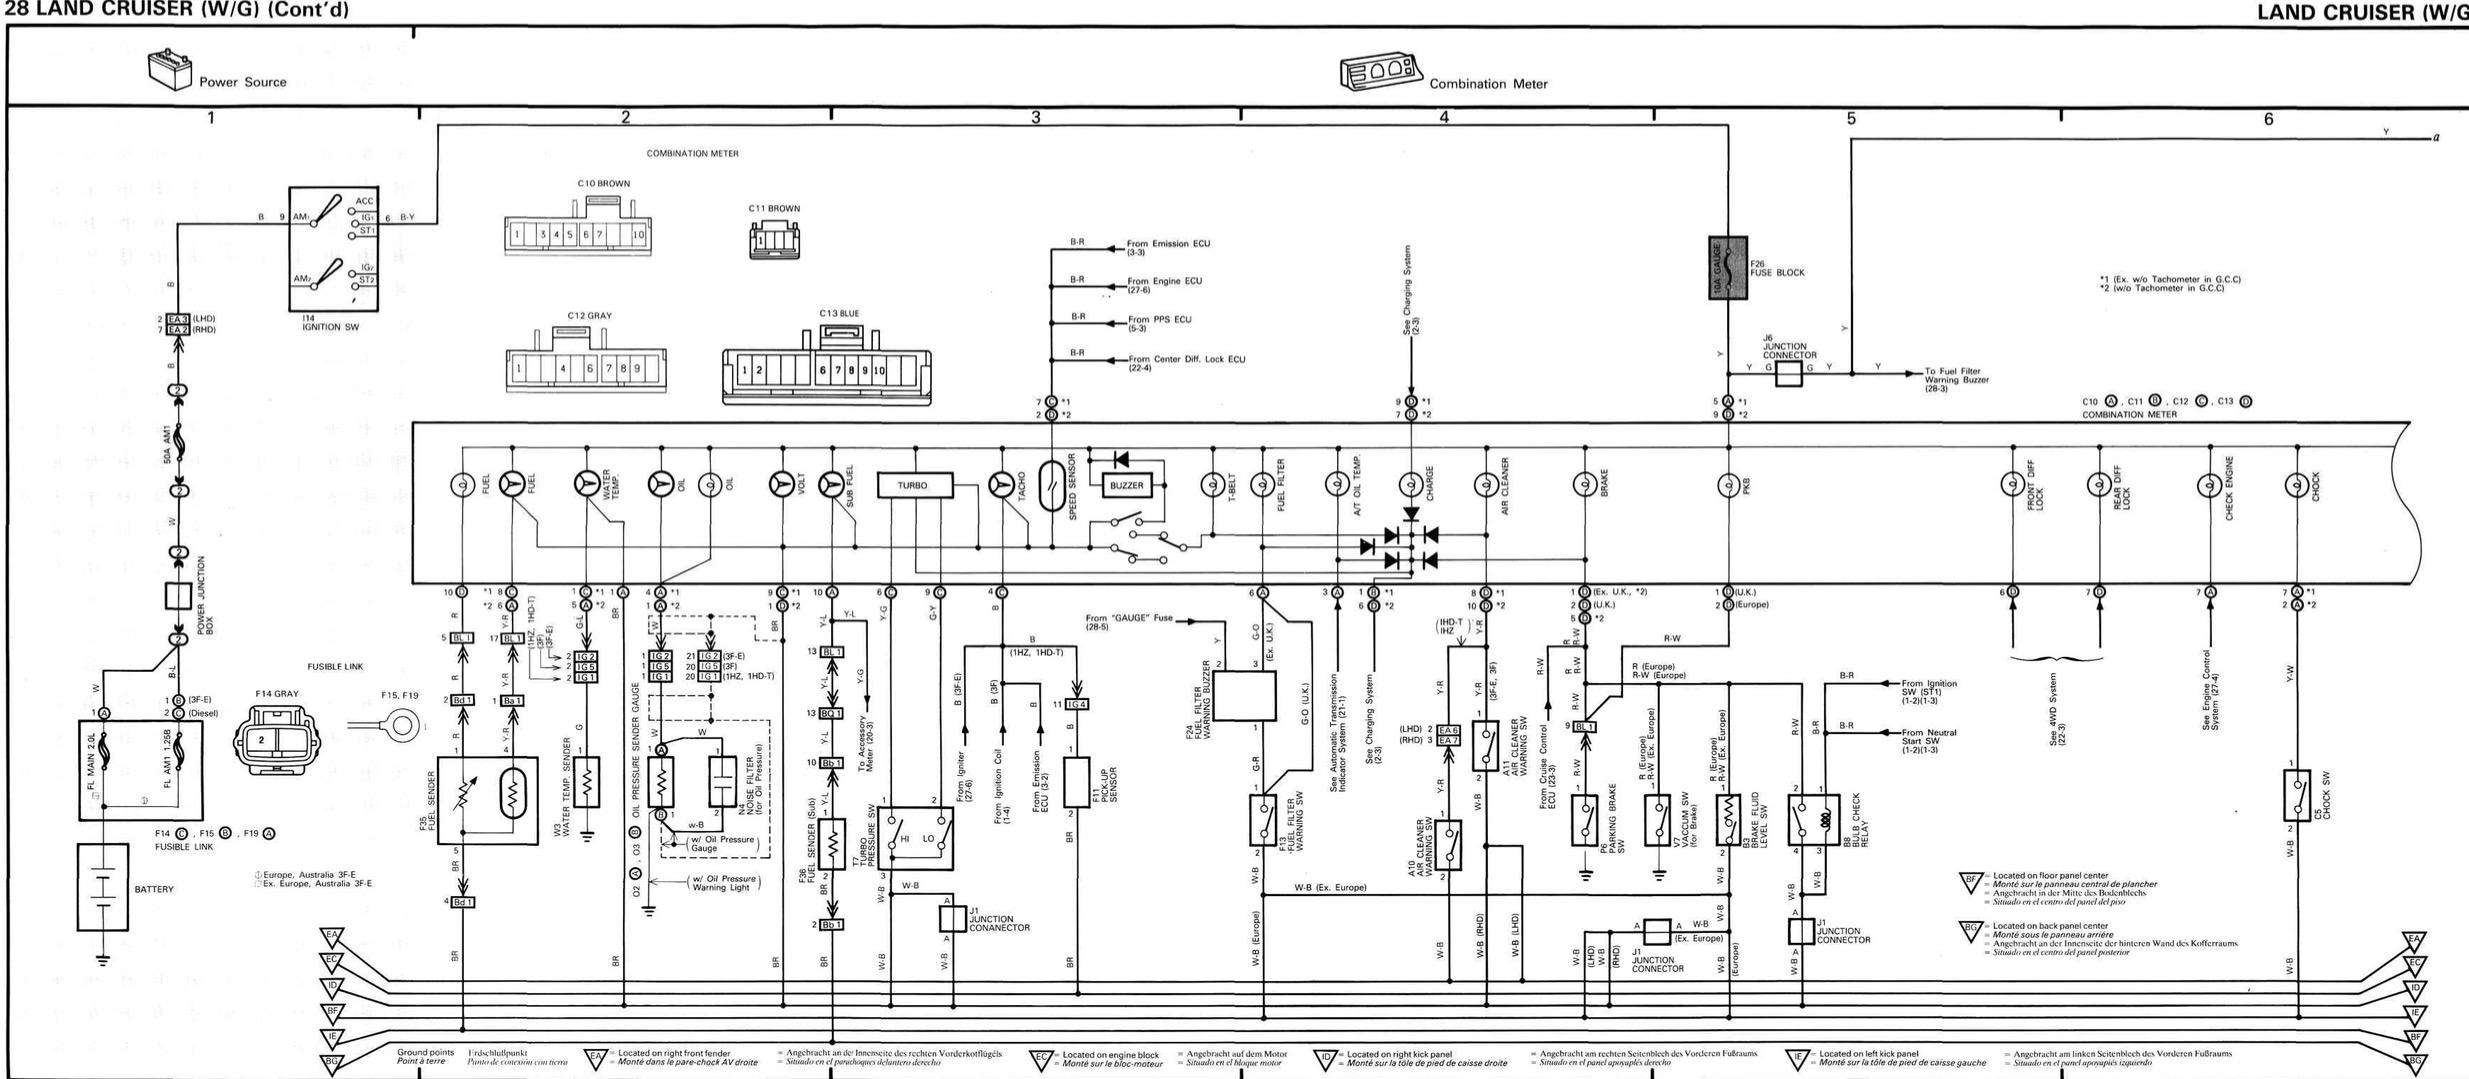 toyota 60 series wiring diagram wiring library Escalade Wiring Diagram screen shot 2015 05 15 at 19 31 48 jpg oil pressure sender wiring schematic ?